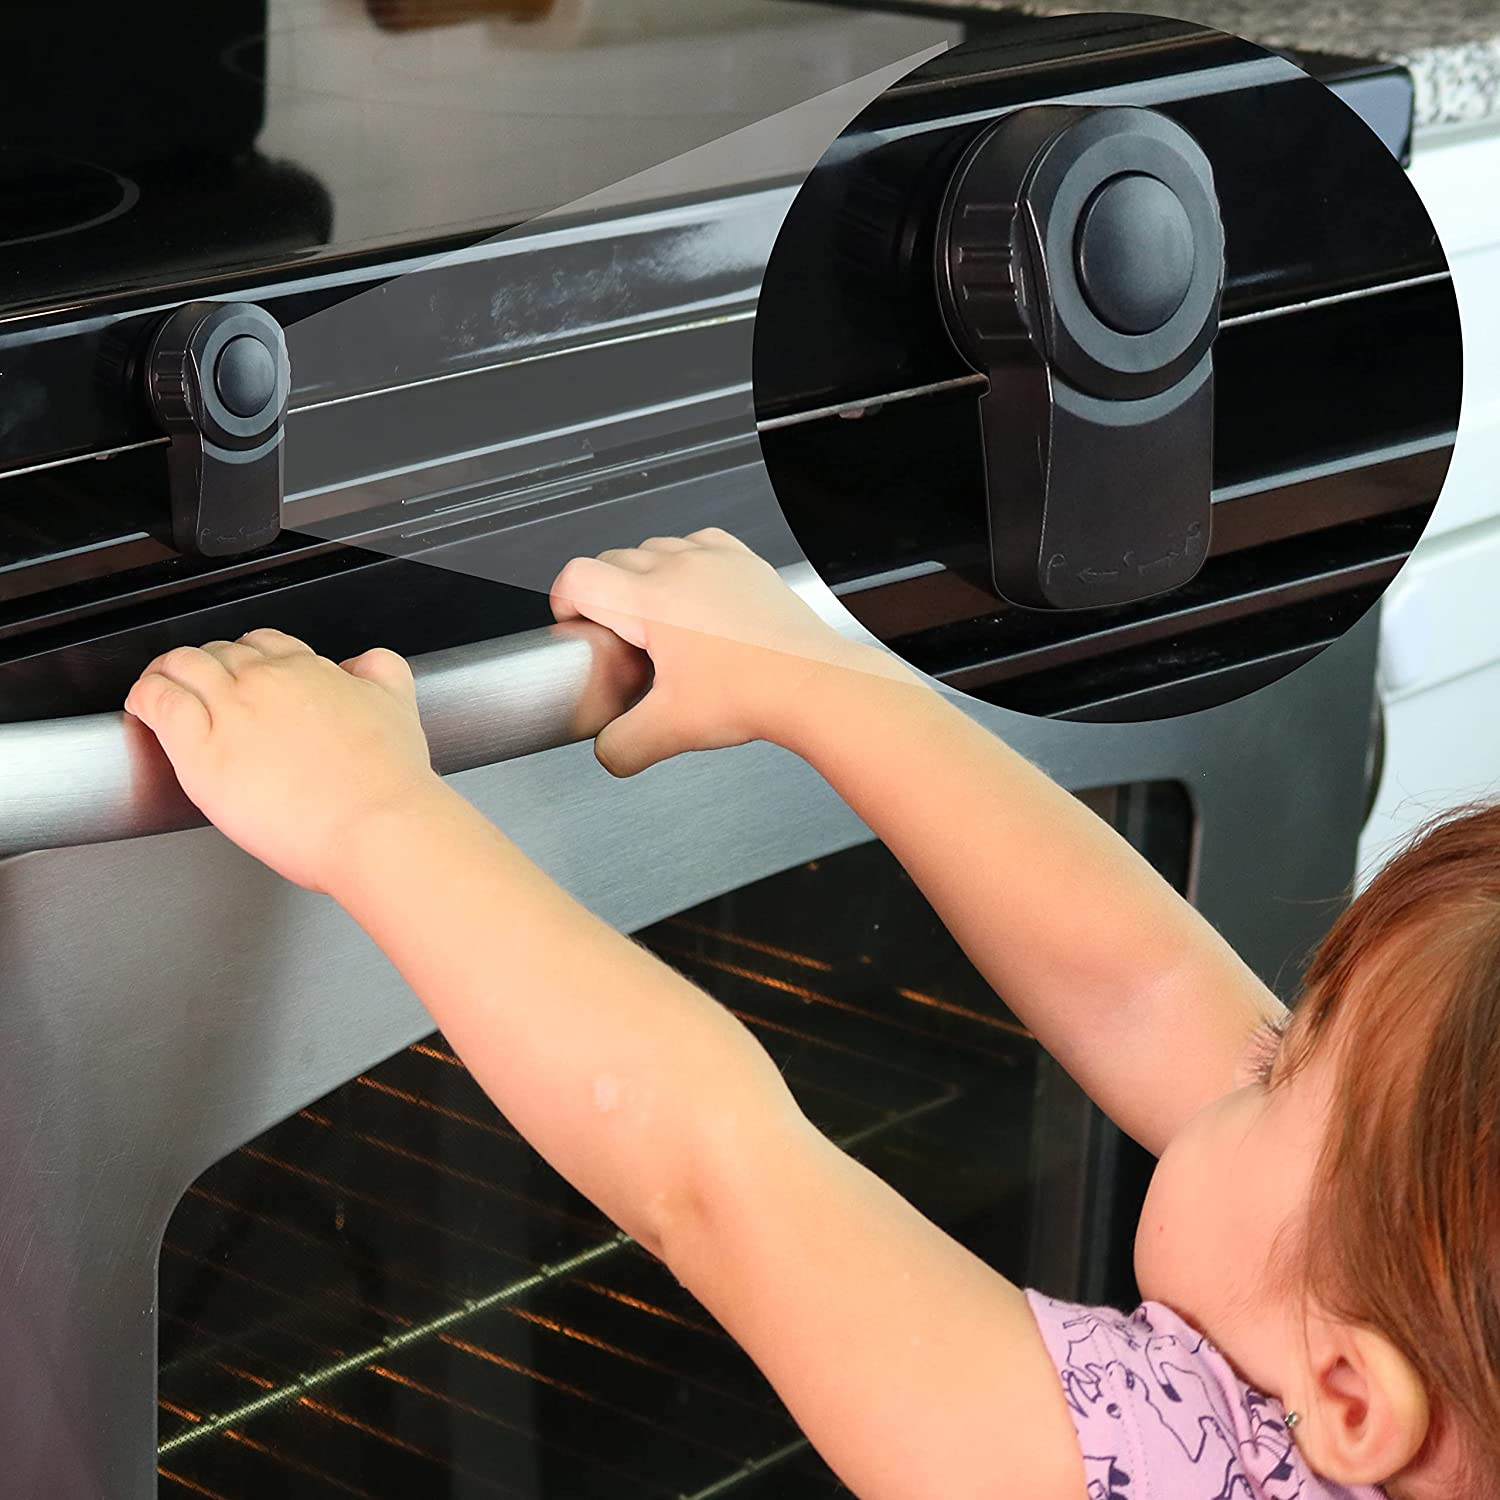 Baby Oven Door Lock Child Safety Switch with Double Locking Protection for Kids, Babies, and Toddlers, Help Prevent Pinched Fingers and Hands, 3M Adhesive Backing